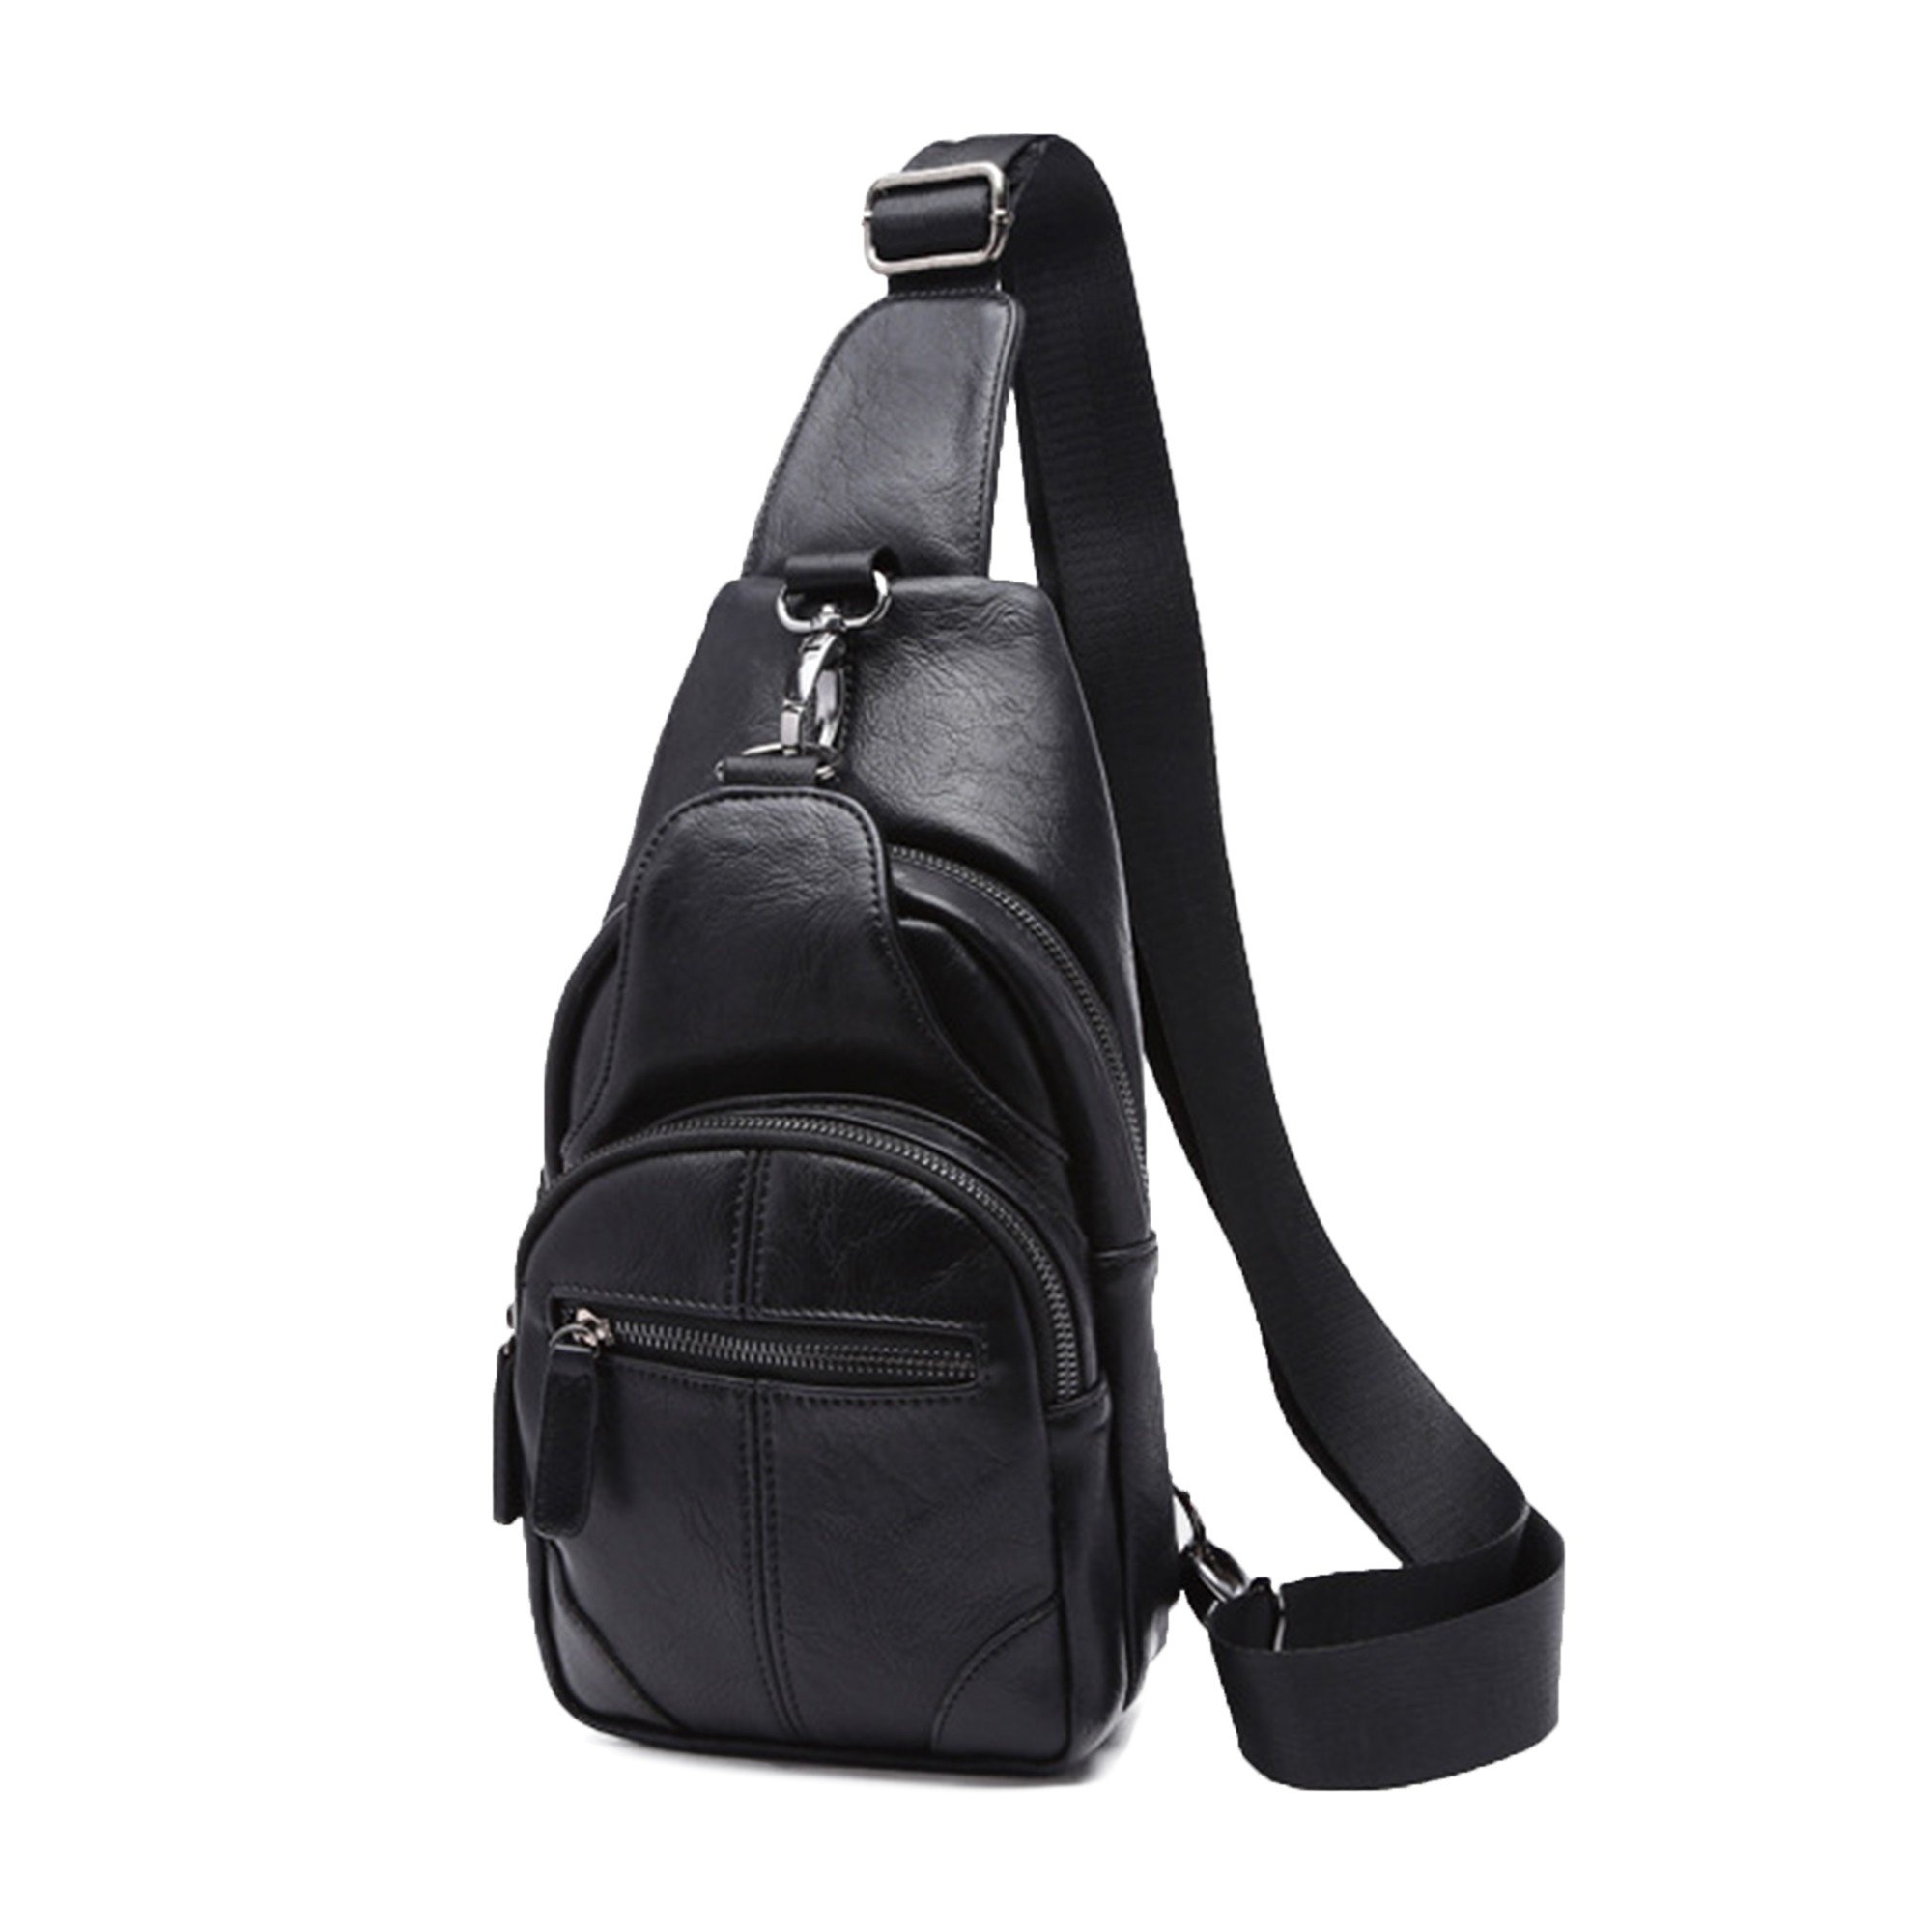 d6337e3581ce4b Vintage PU Leather Sling Chest Bag Casual Travel Cross Body Shoulder ...